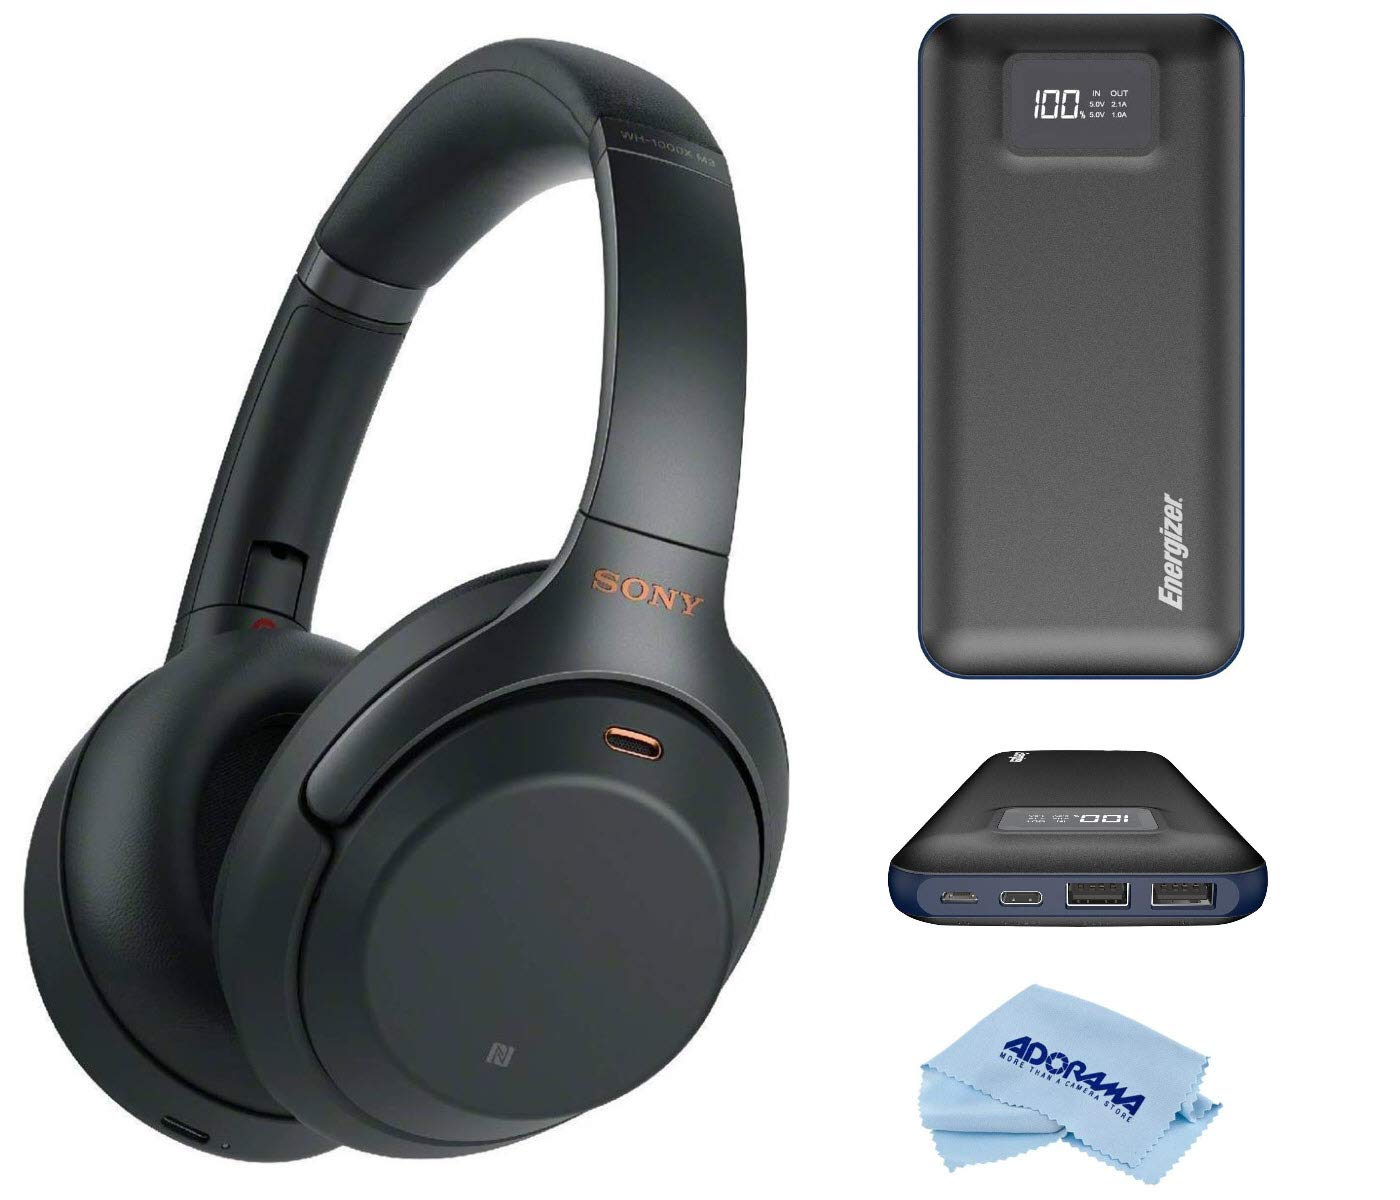 Sony WH-1000XM3 Wireless Bluetooth Noise-Canceling Over-The-Ear Headphones with Mic and Alexa Voice Control, Black, Bundle with Energizer 20000mAh LCD Display Portable Power Bank, Cloth